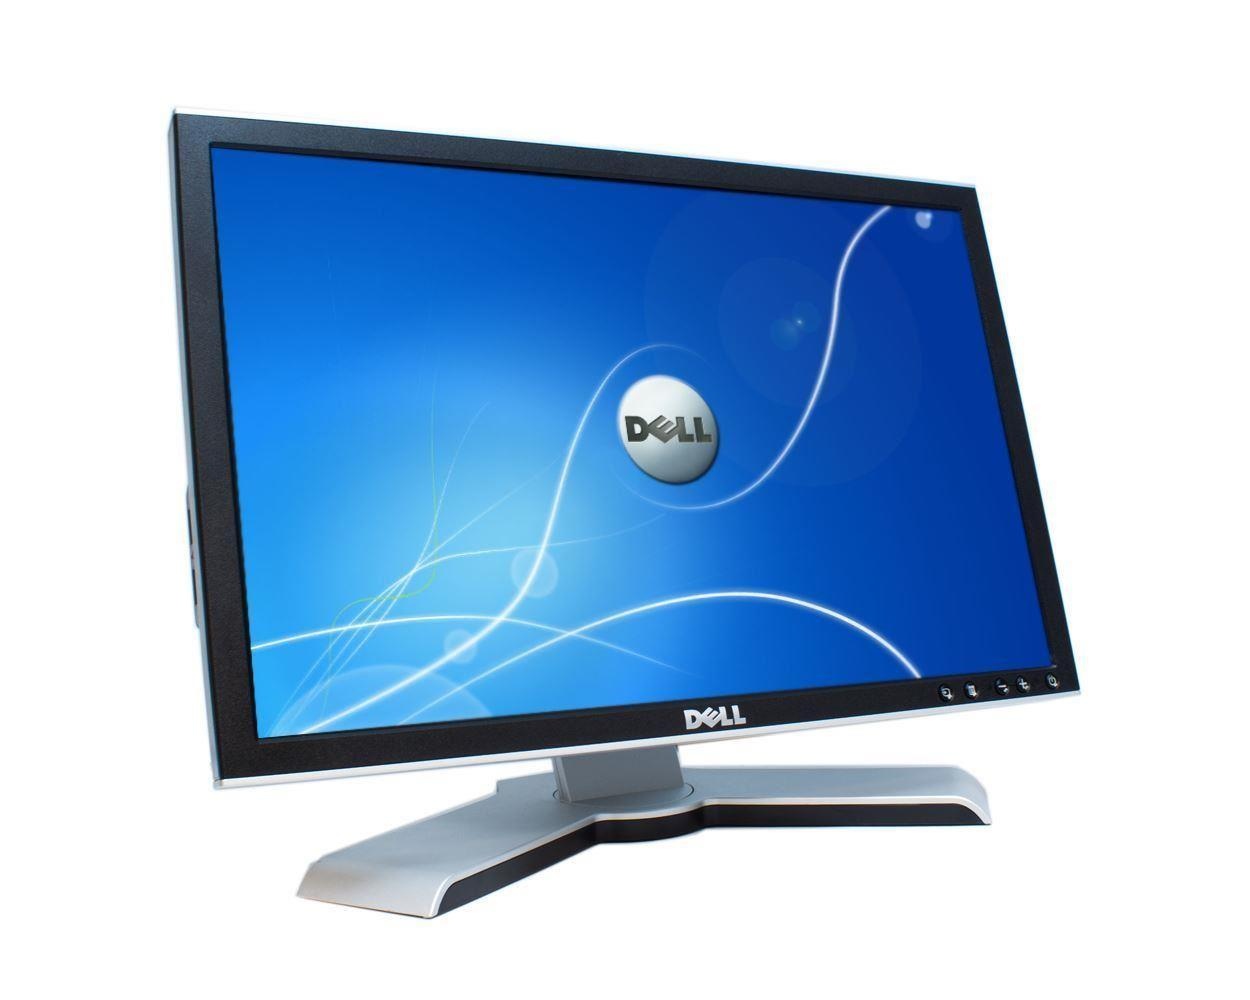 DELL 2009W DIGITAL DRIVER WINDOWS XP